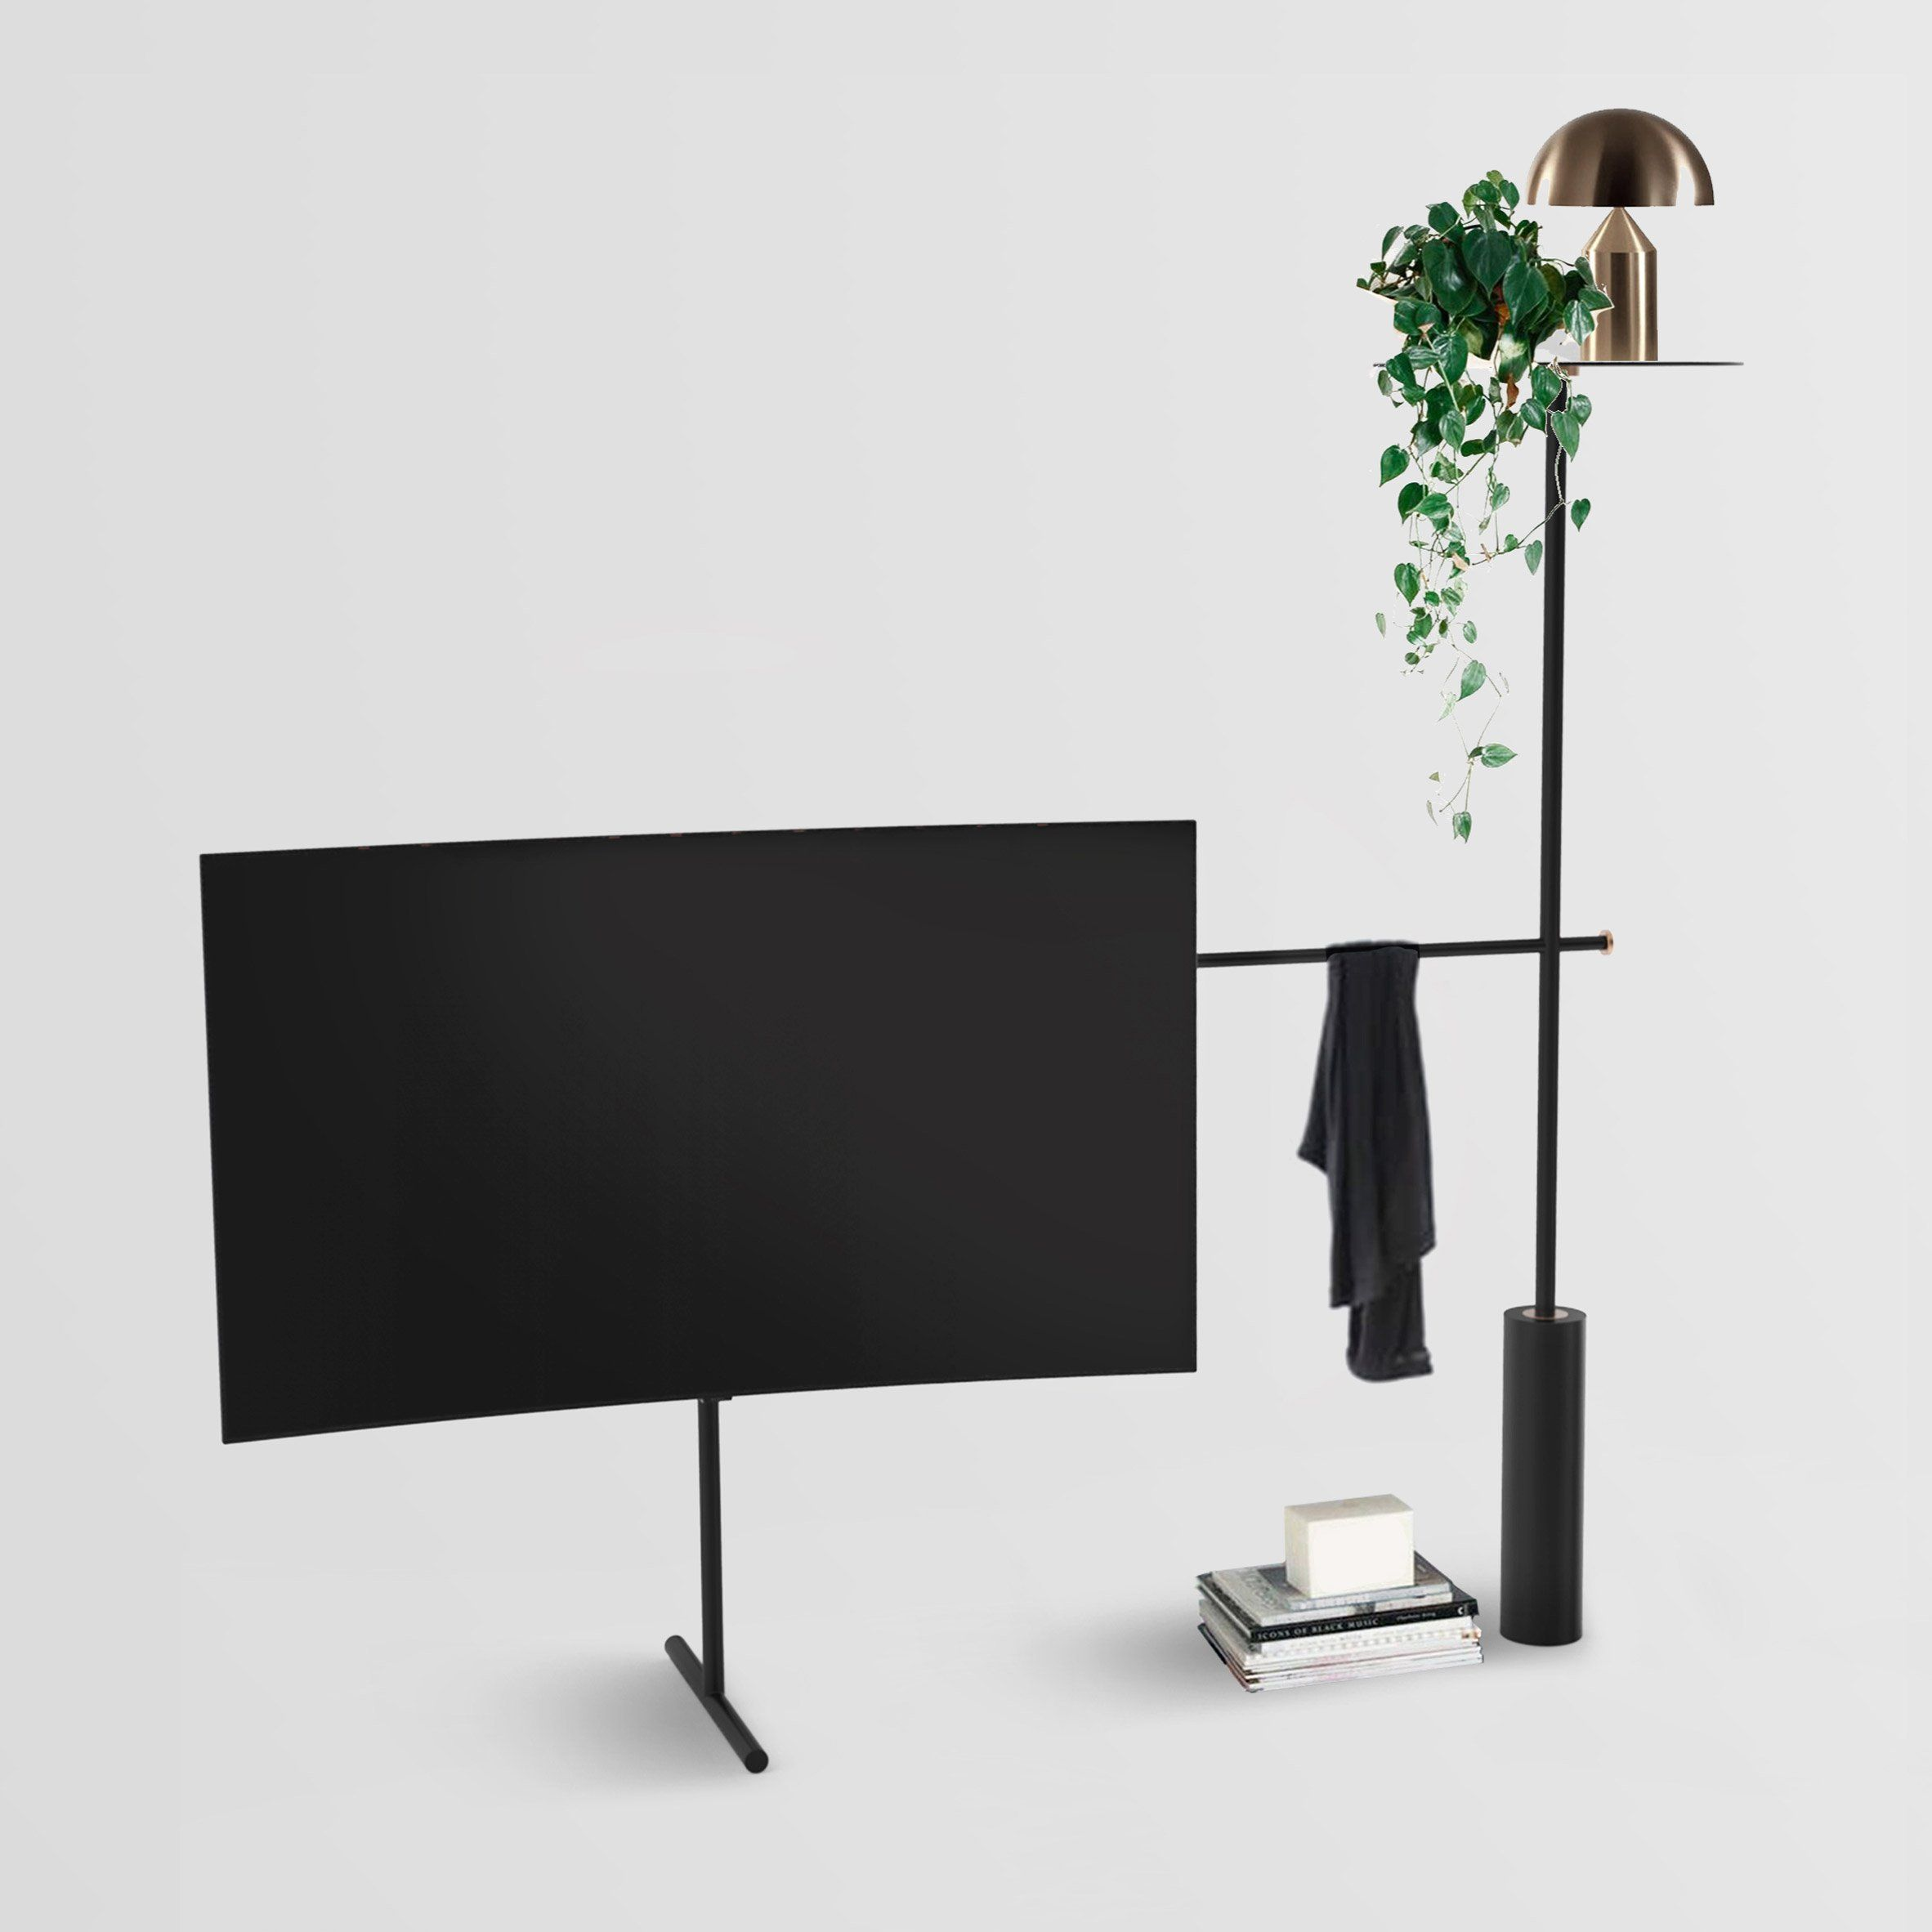 A Tv Stand That Doubles As A Plant Pot Is Among The Designs Shortlisted In Dezeen And Samsung S Qled Tv Stand Design Tv Stand Designs Stand Design Diy Tv Stand